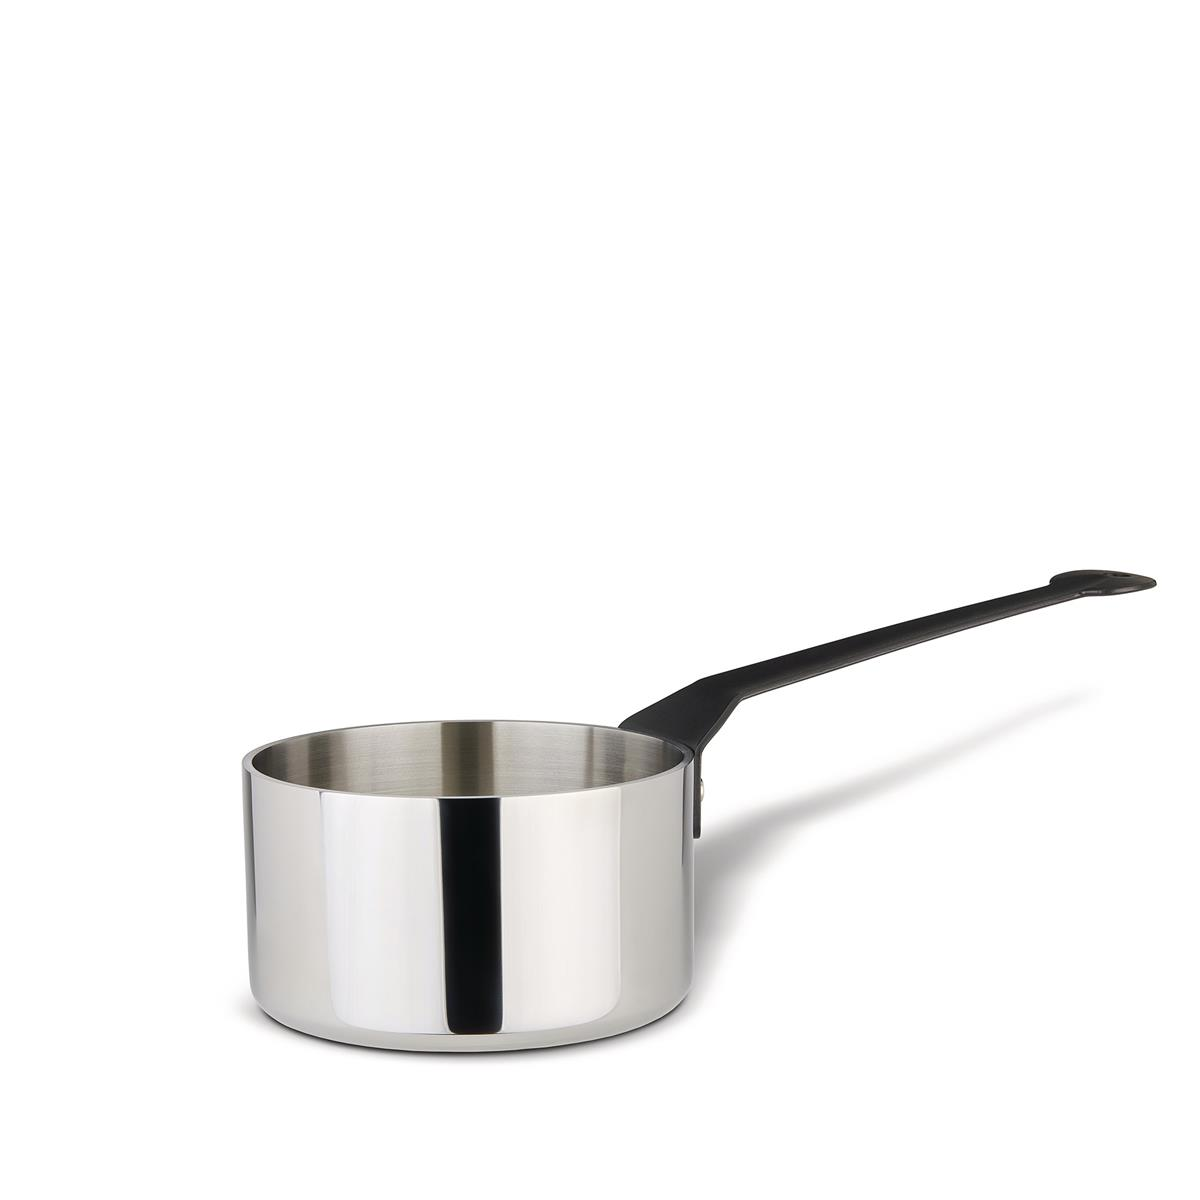 Alessi-La Cintura di Orione Casserole in trilaminate suitable for induction